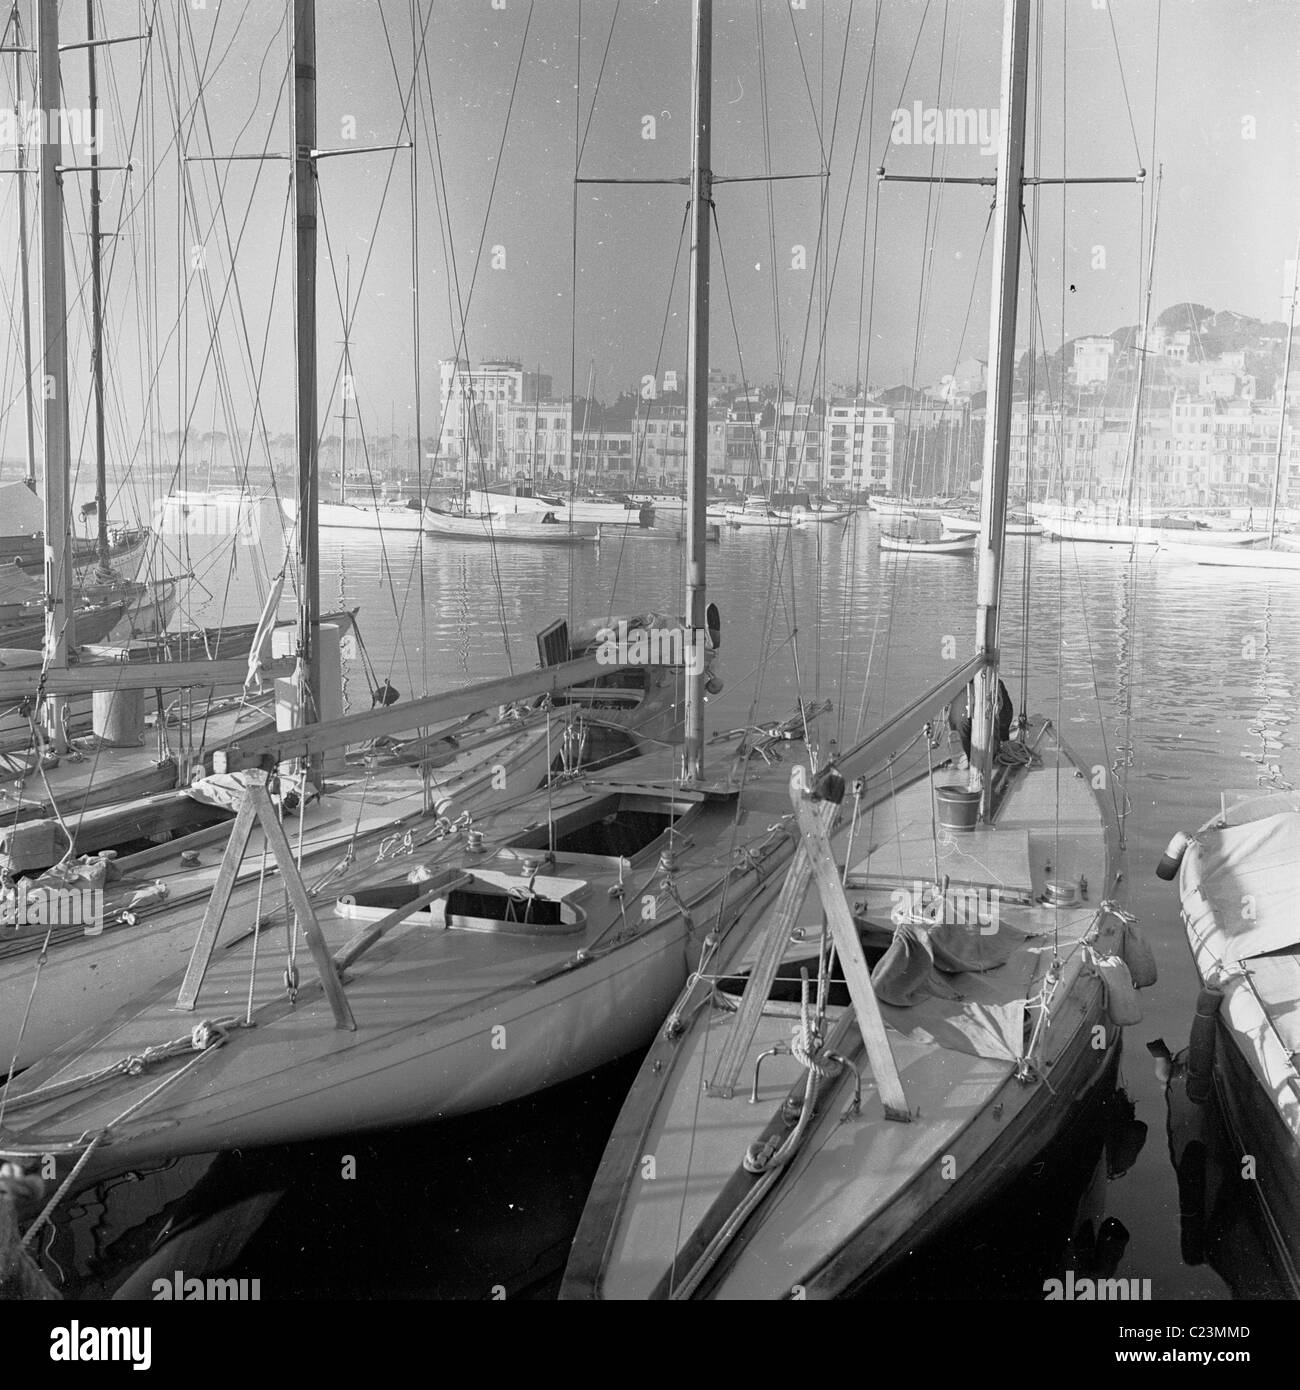 1950s. France. Sailing boats moored in the harbour at Cannes, in this historical photograph by J Allan Cash. - Stock Image